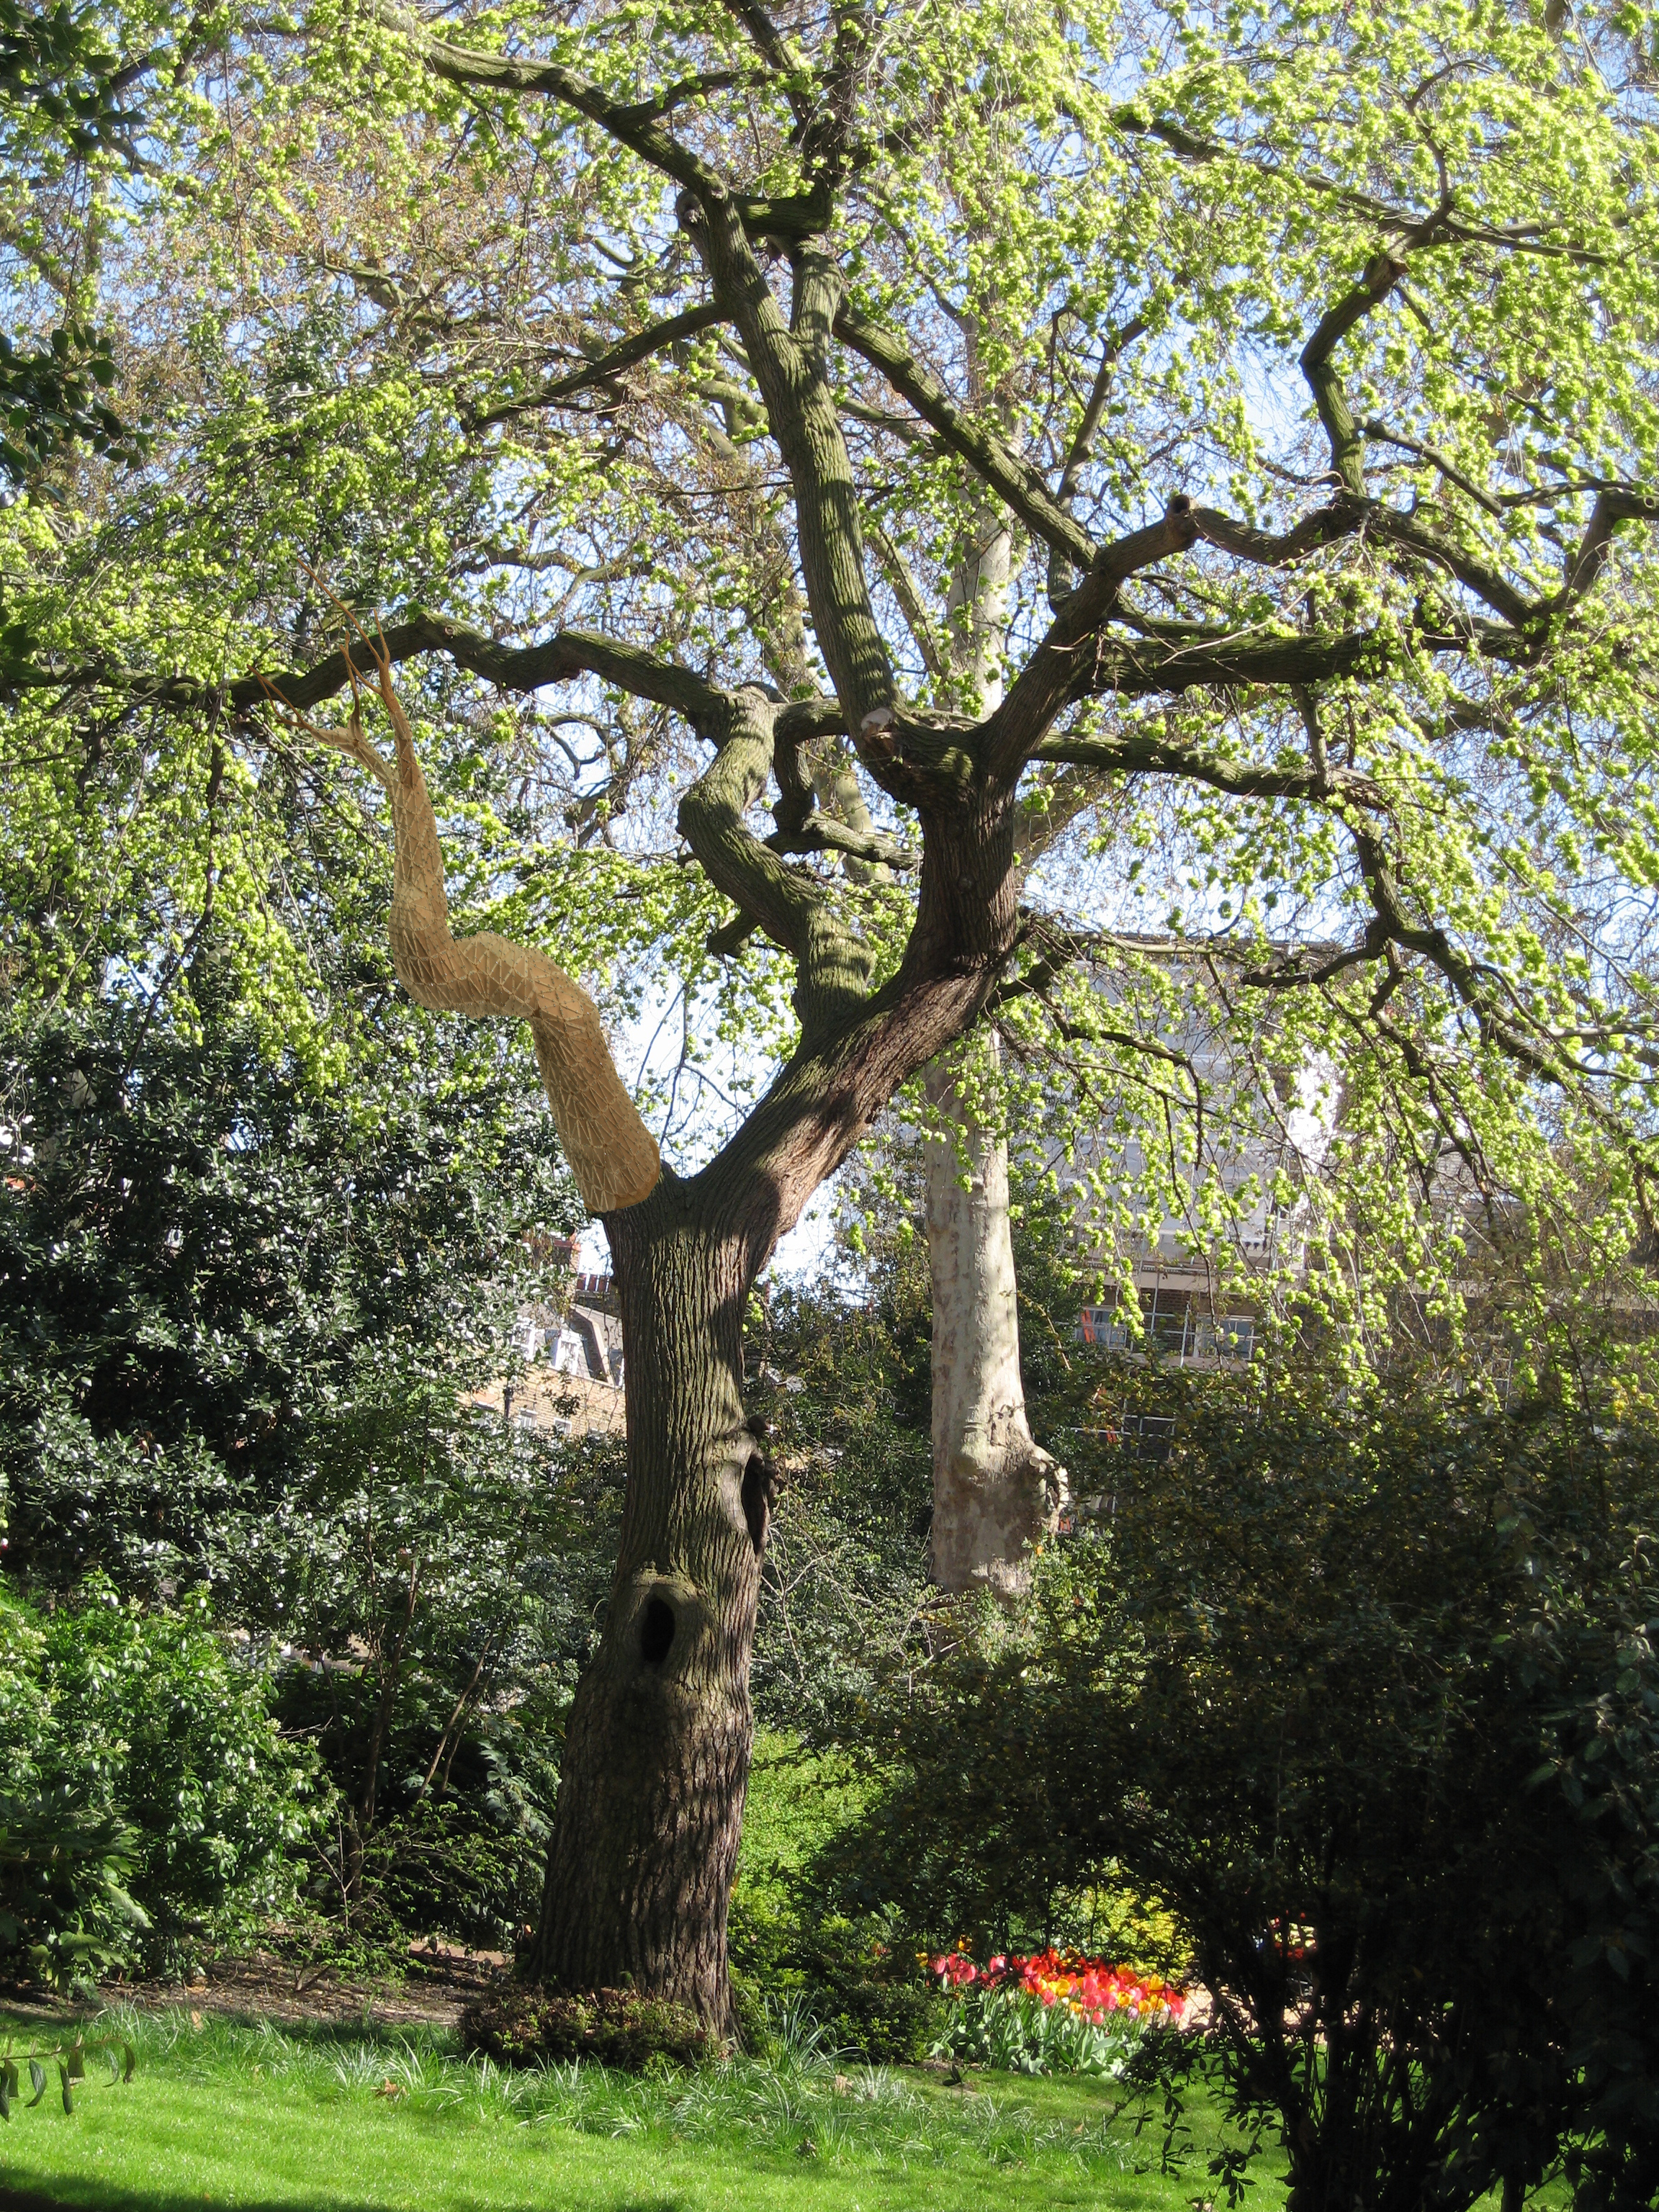 Artificial Limb : In response to man's desire to tamper with nature and the urban landscape, a prosthetic limb was designed for a wych elm in london…it also serves as a bird lodging.